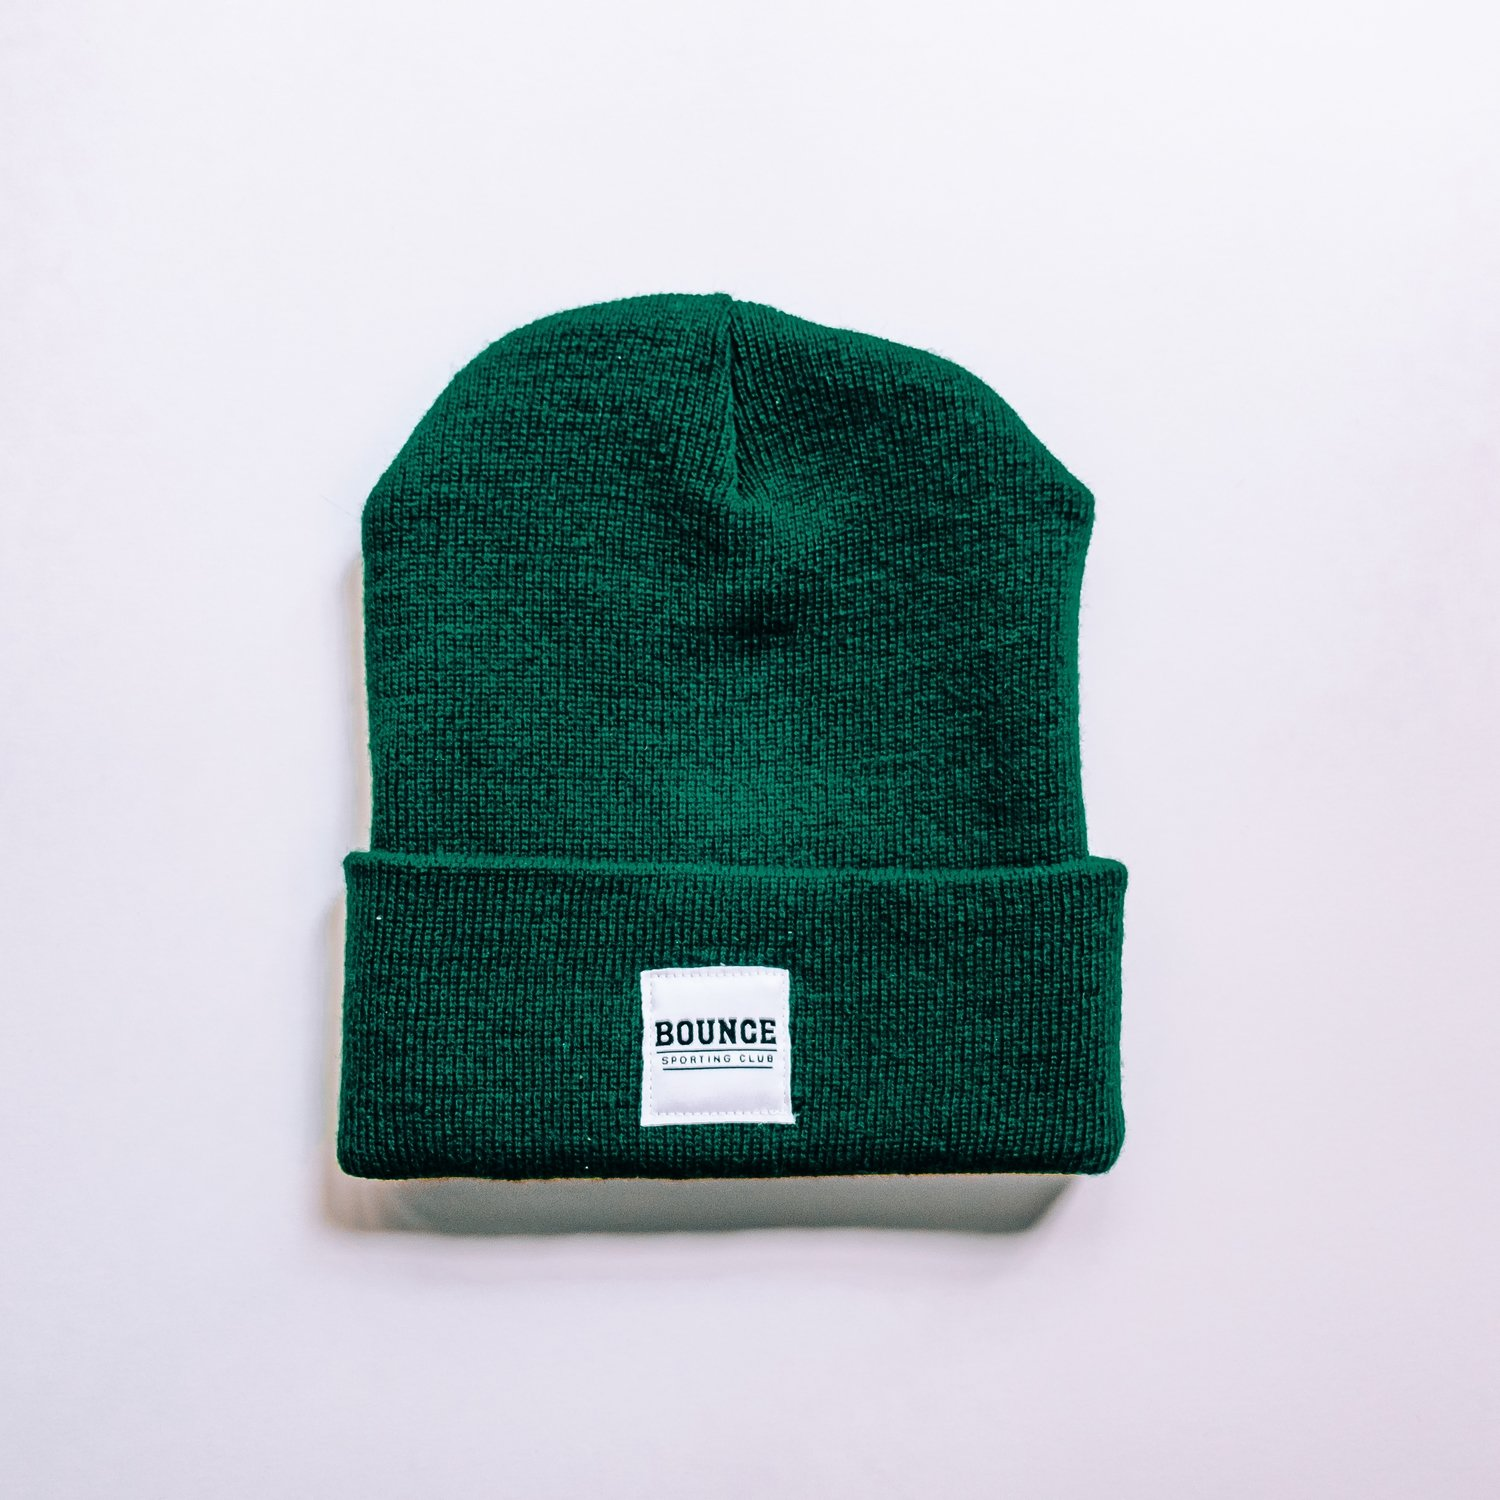 Bounce Patchwork Beanie - Green